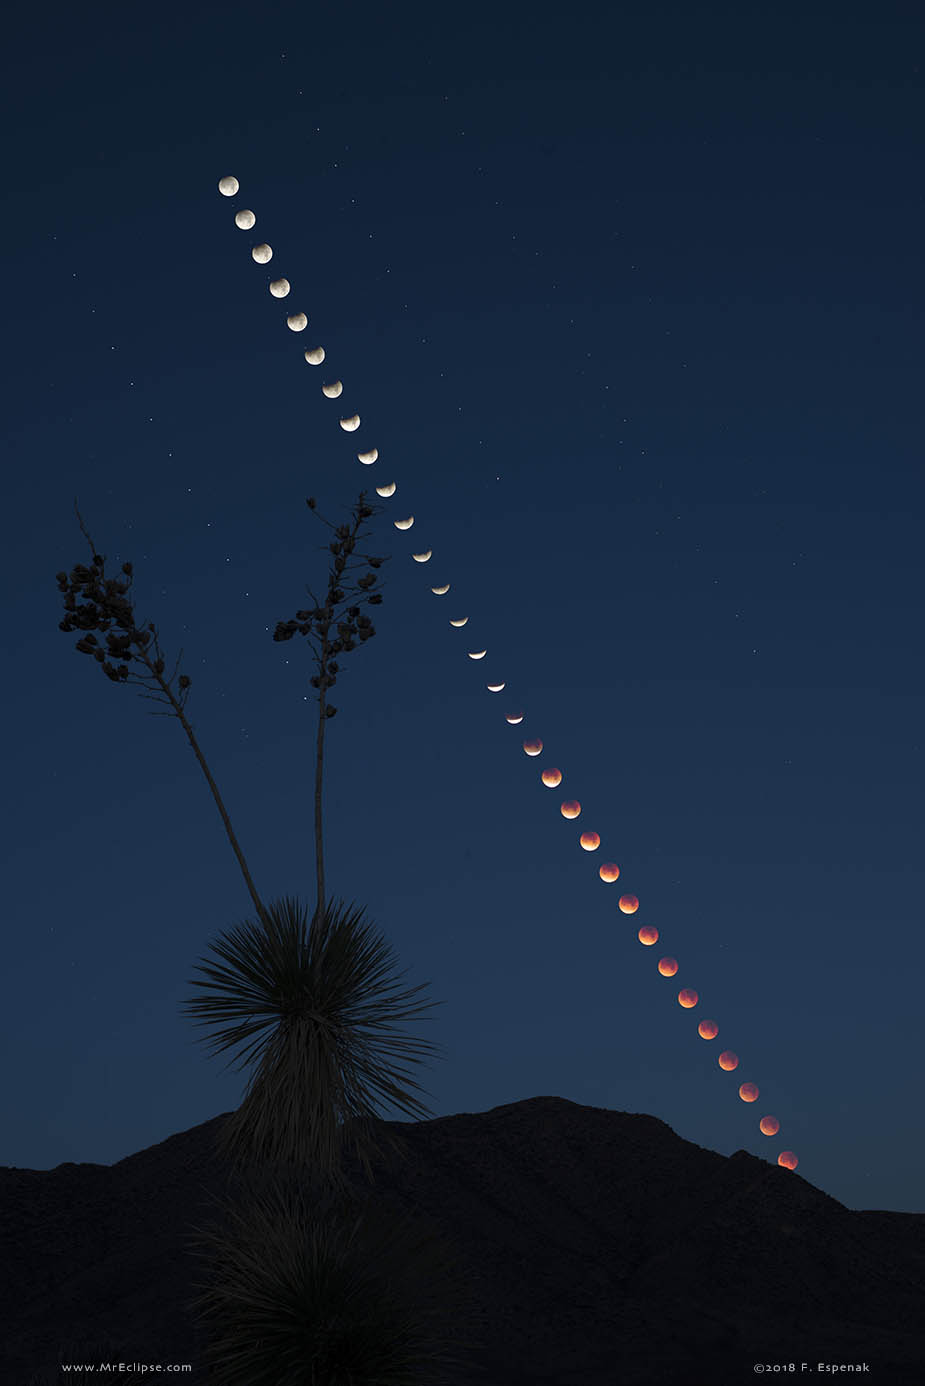 Total Lunar Eclipse at Moonset